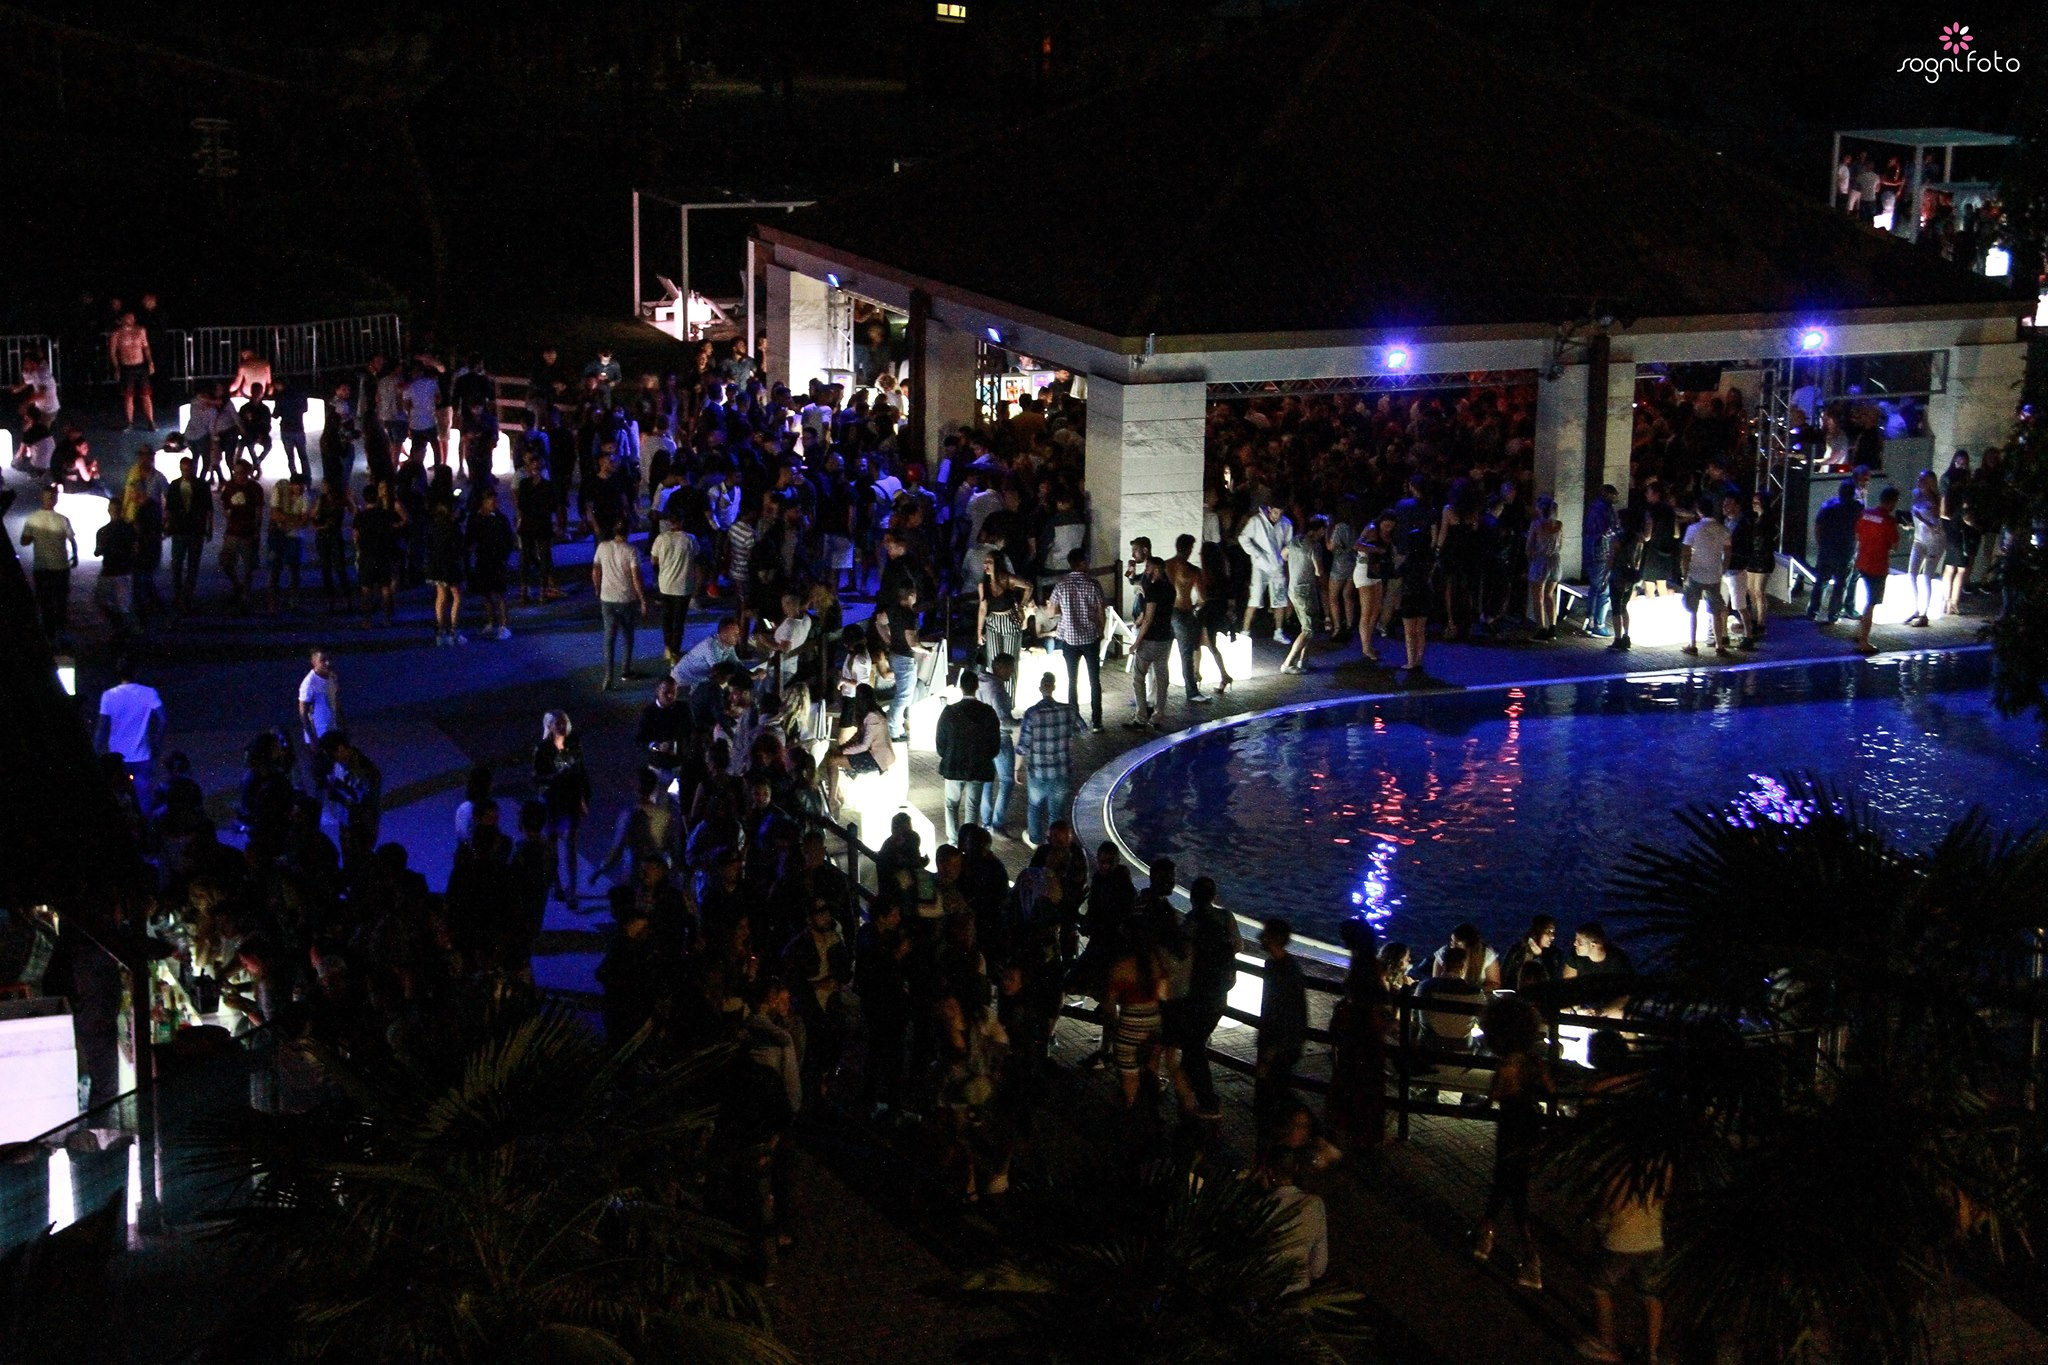 BANGARANG / Grand Opening Finest PoolParty